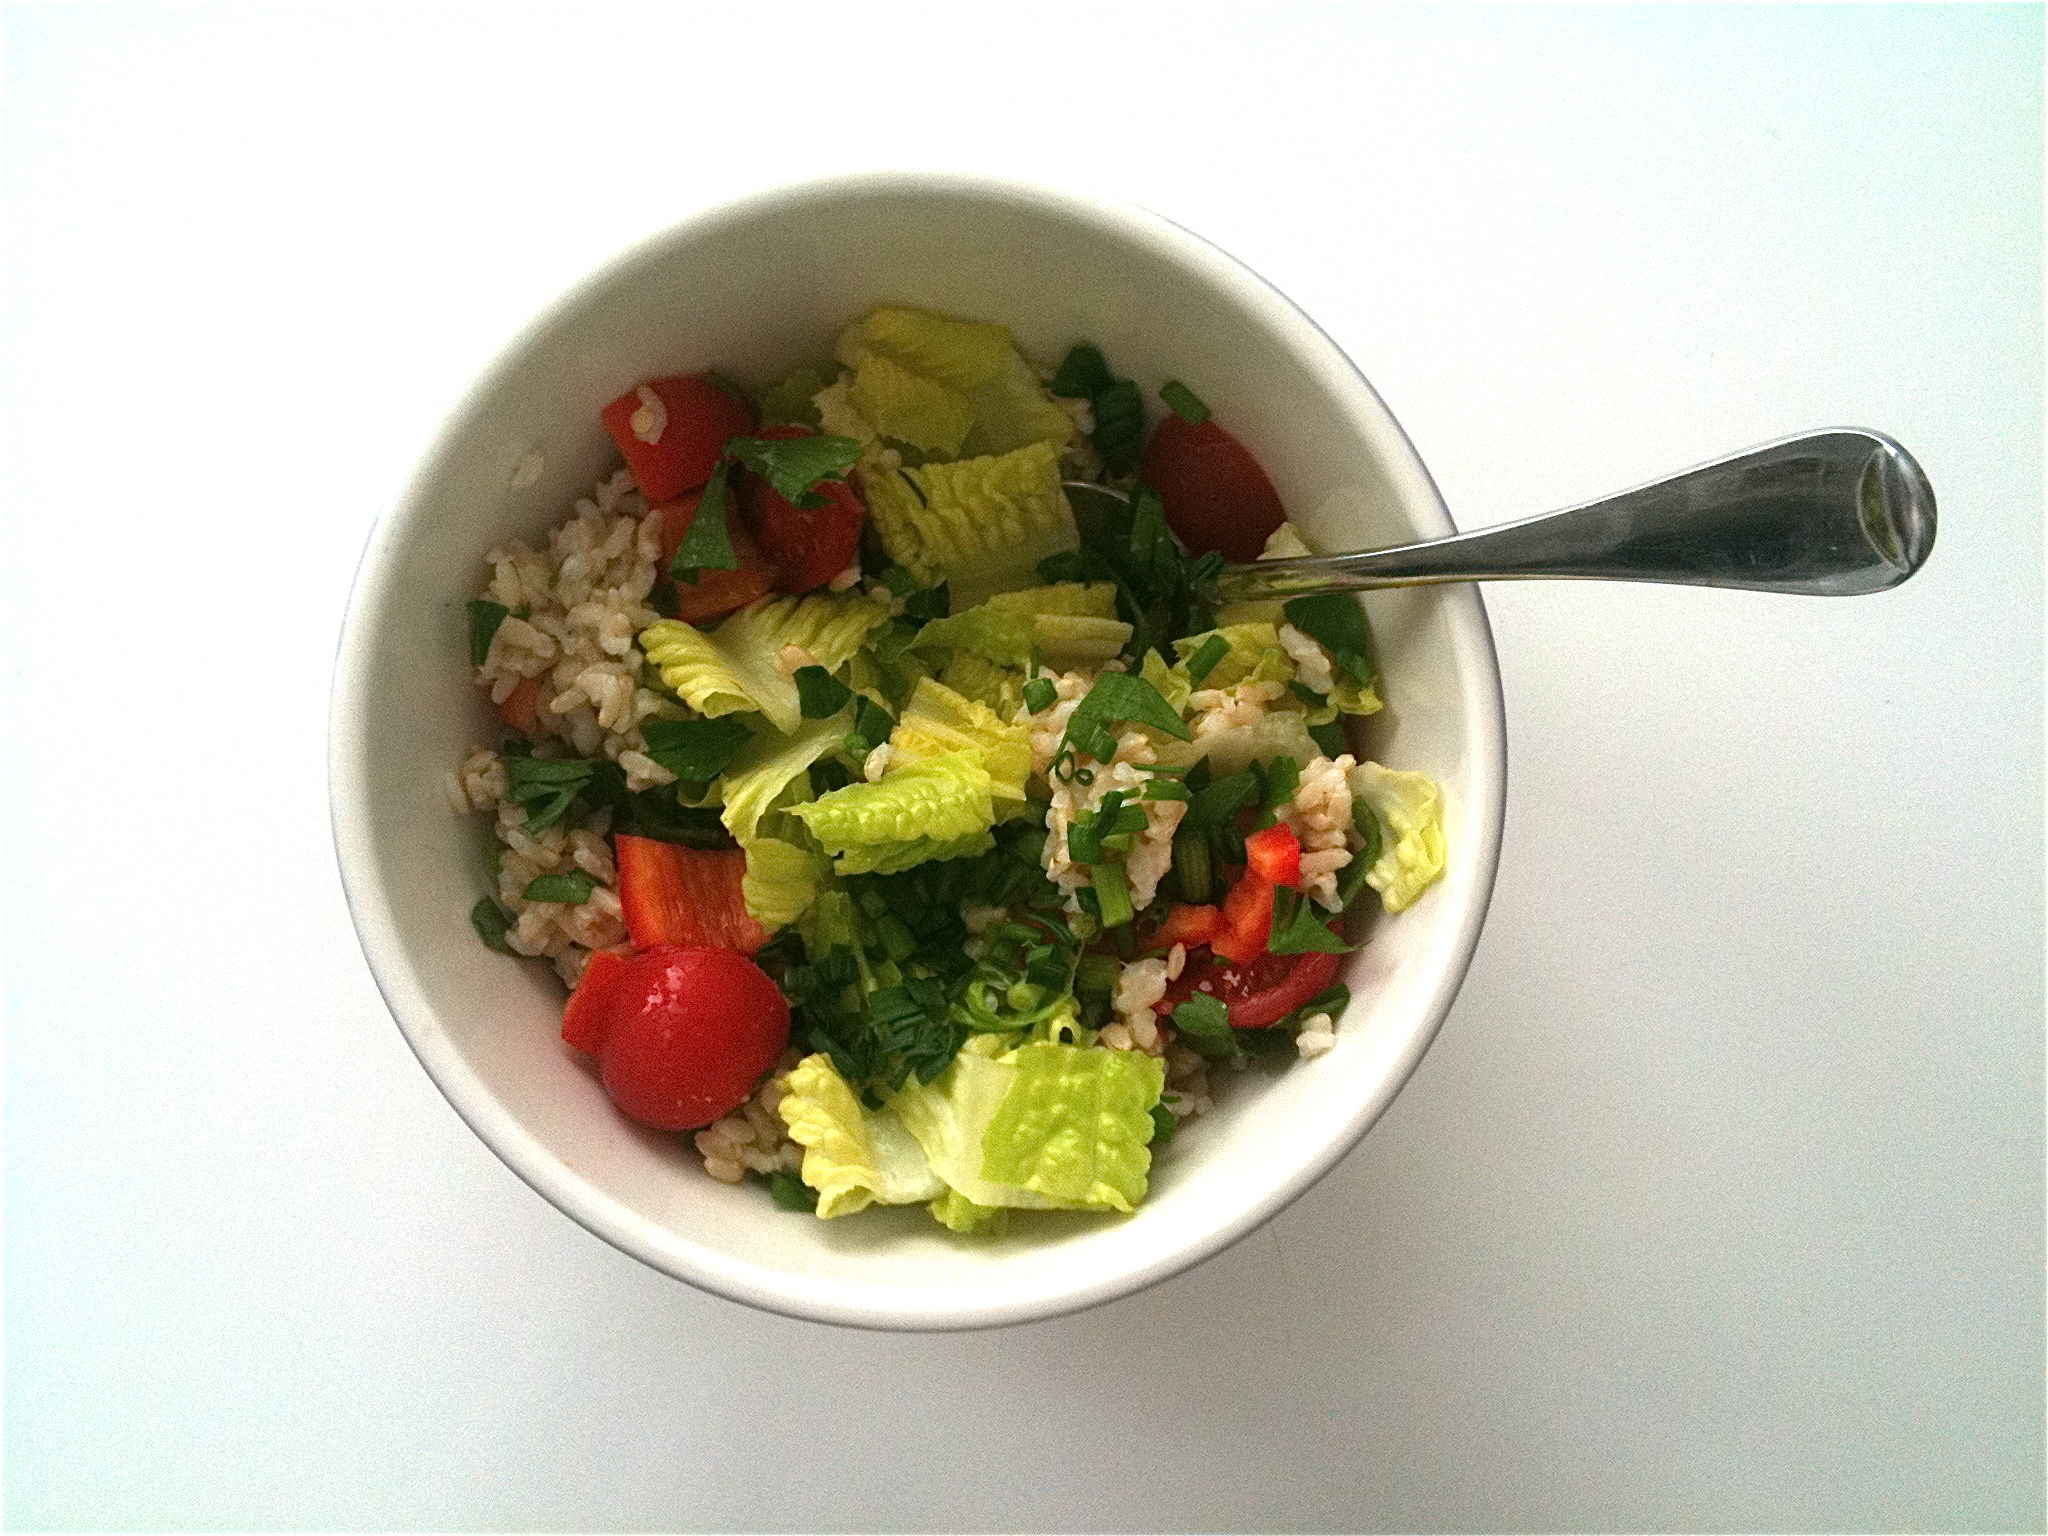 Simple salads of market bought (amazing!) brown rice, herbs and veggies became an easy go-to lunch option...